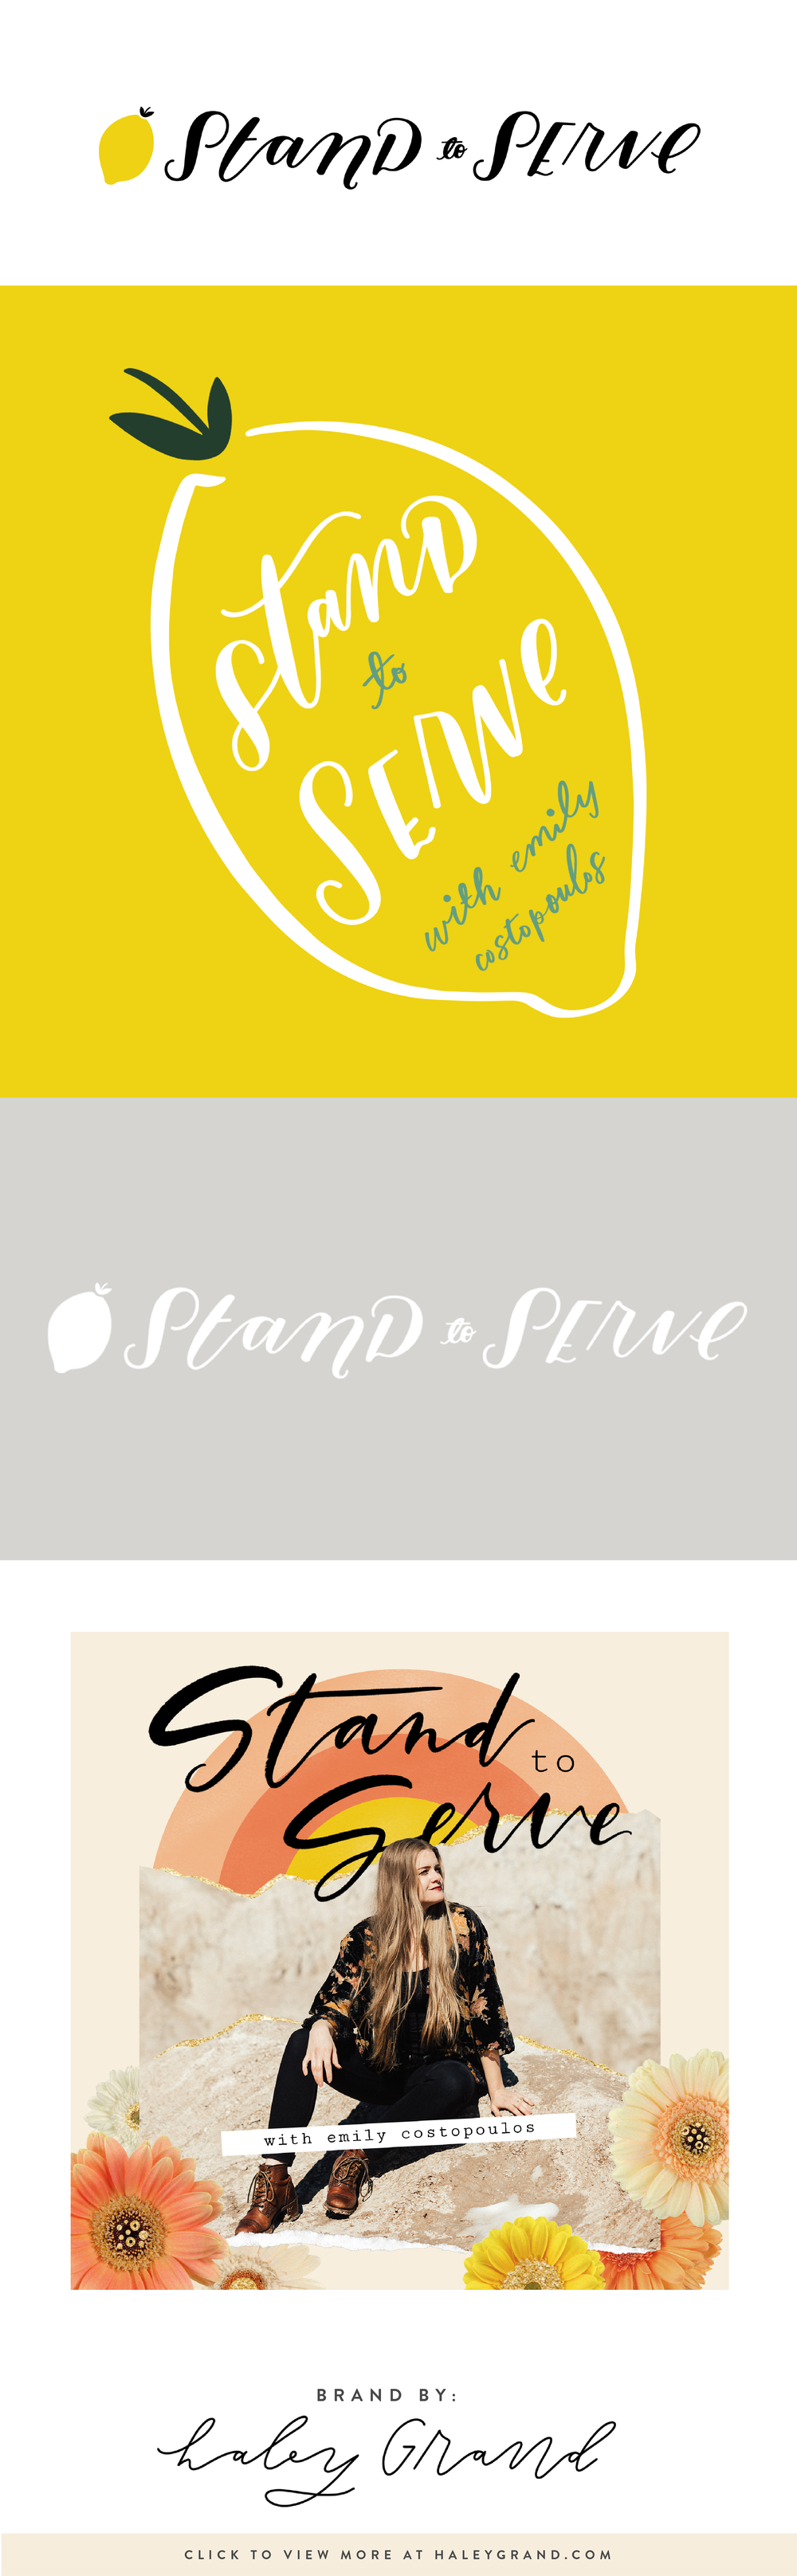 Get inspired by this hand-lettered logo and podcast cover art. Haley designed the hand-drawn icons and the collage covers. Are you a creative entrepreneur? Up-level your brand with a logo designed using hand lettering and illustration by Haley Grand! #handlettered #podcast #branding